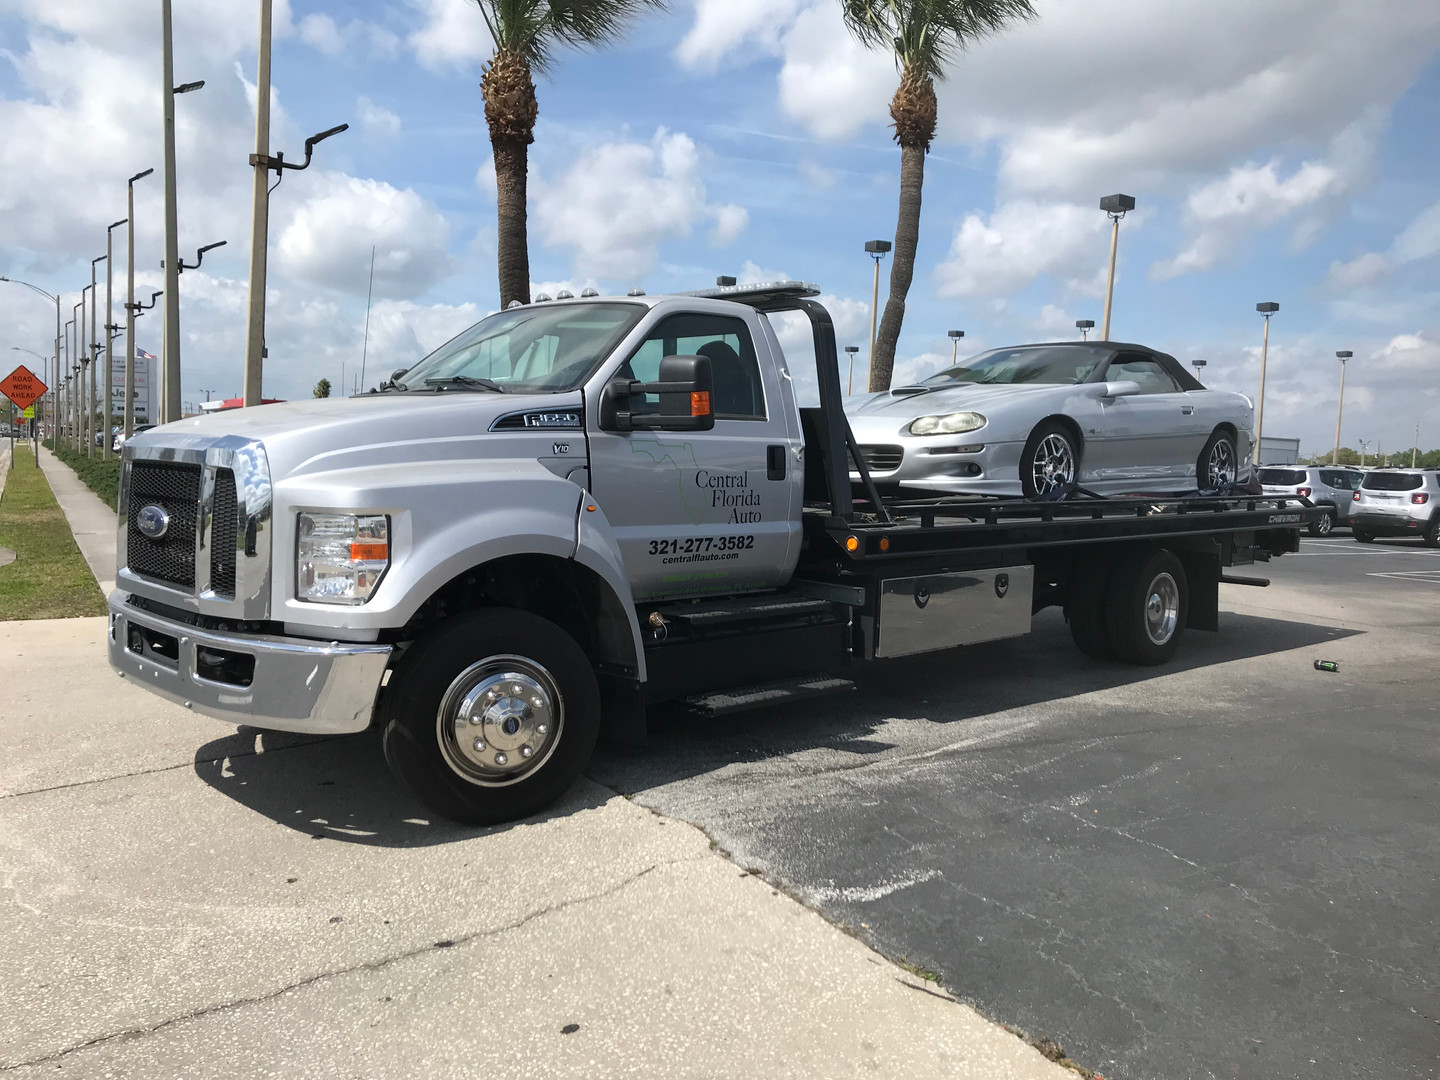 towing-company.jpg